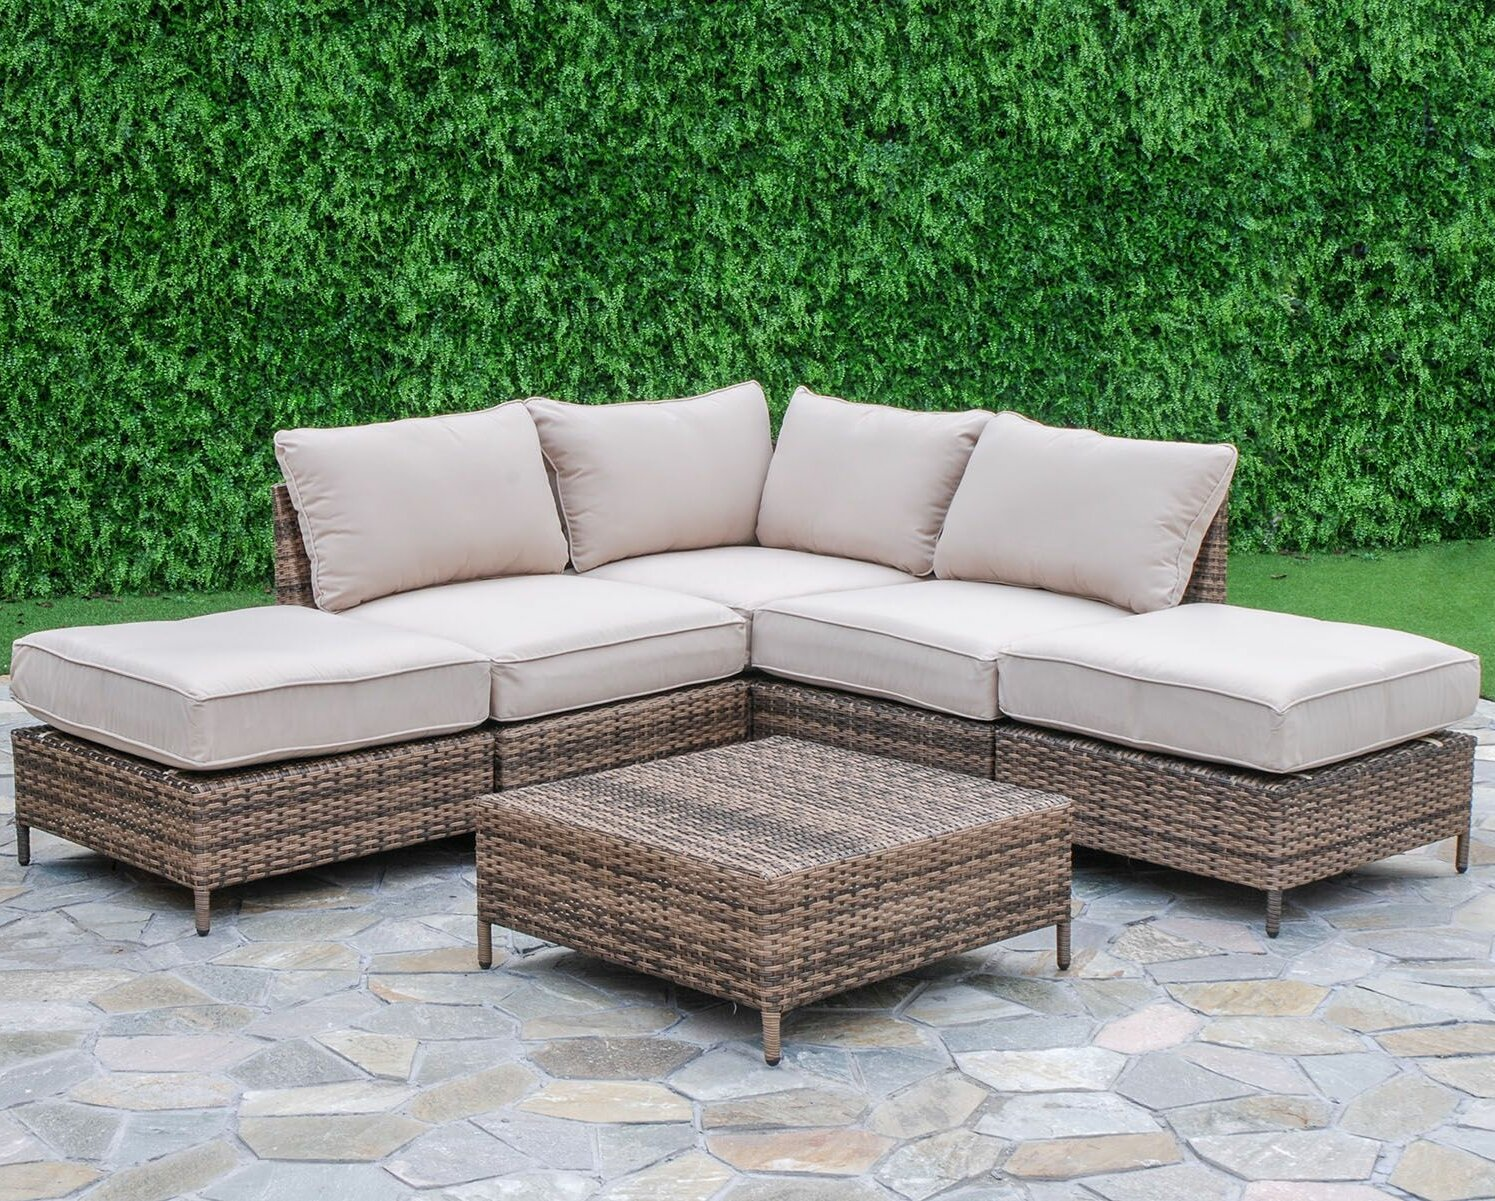 Beachcrest Home Sophie 6 Piece Sectional Seating Group with Cushions ...